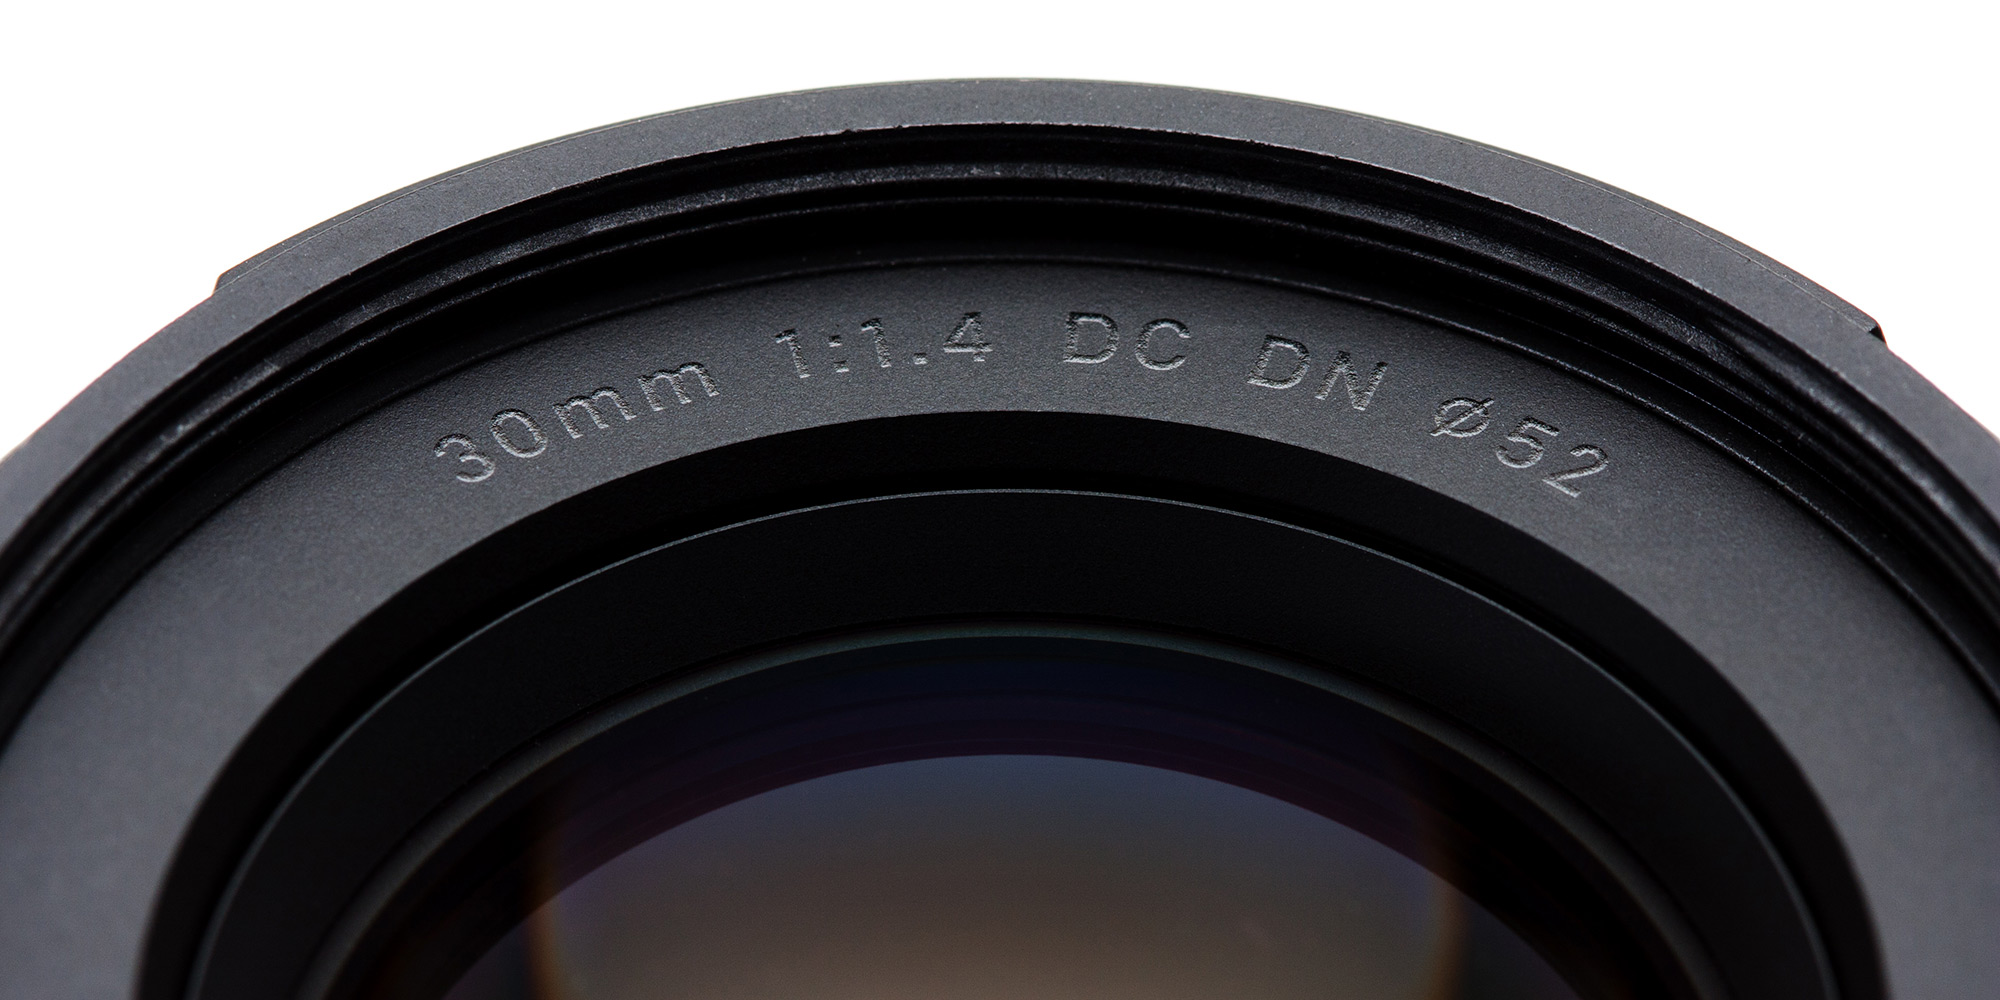 Sigma 30mm F1 4 DC DN Contemporary for Sony E-mount lens review